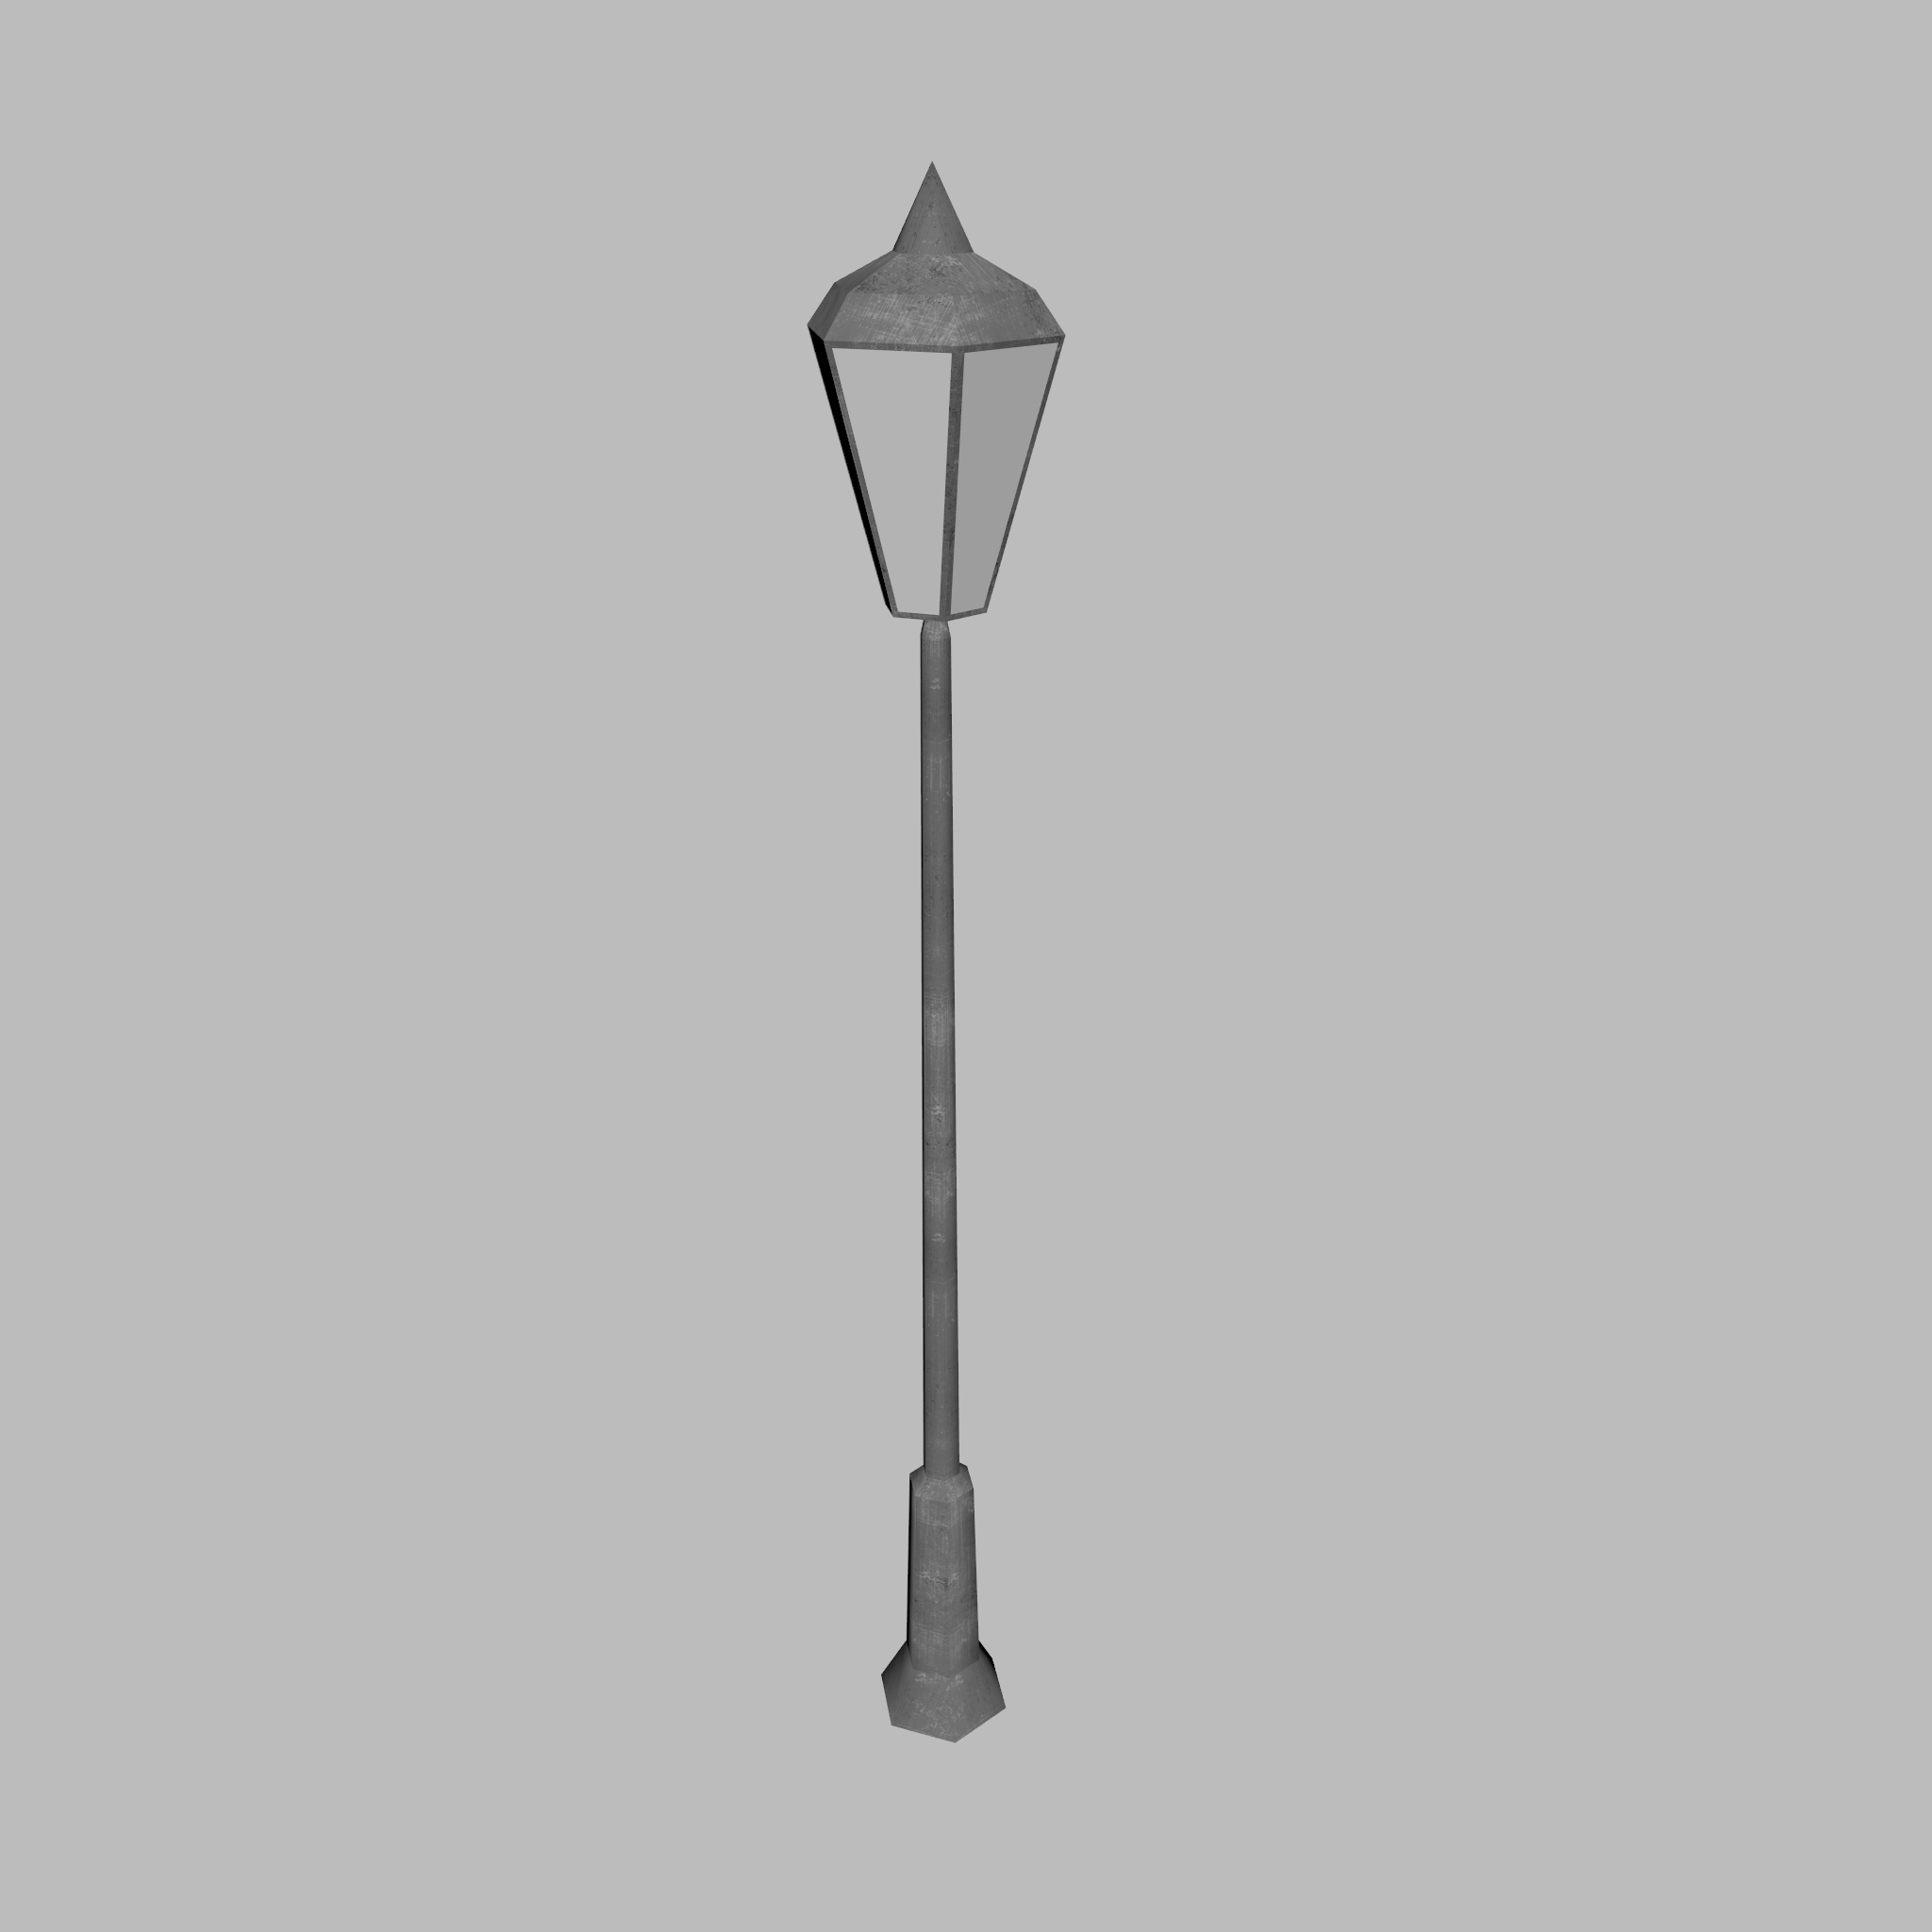 Low-Poly Lamppost 3d model 3ds fbx ma mb obj 271556